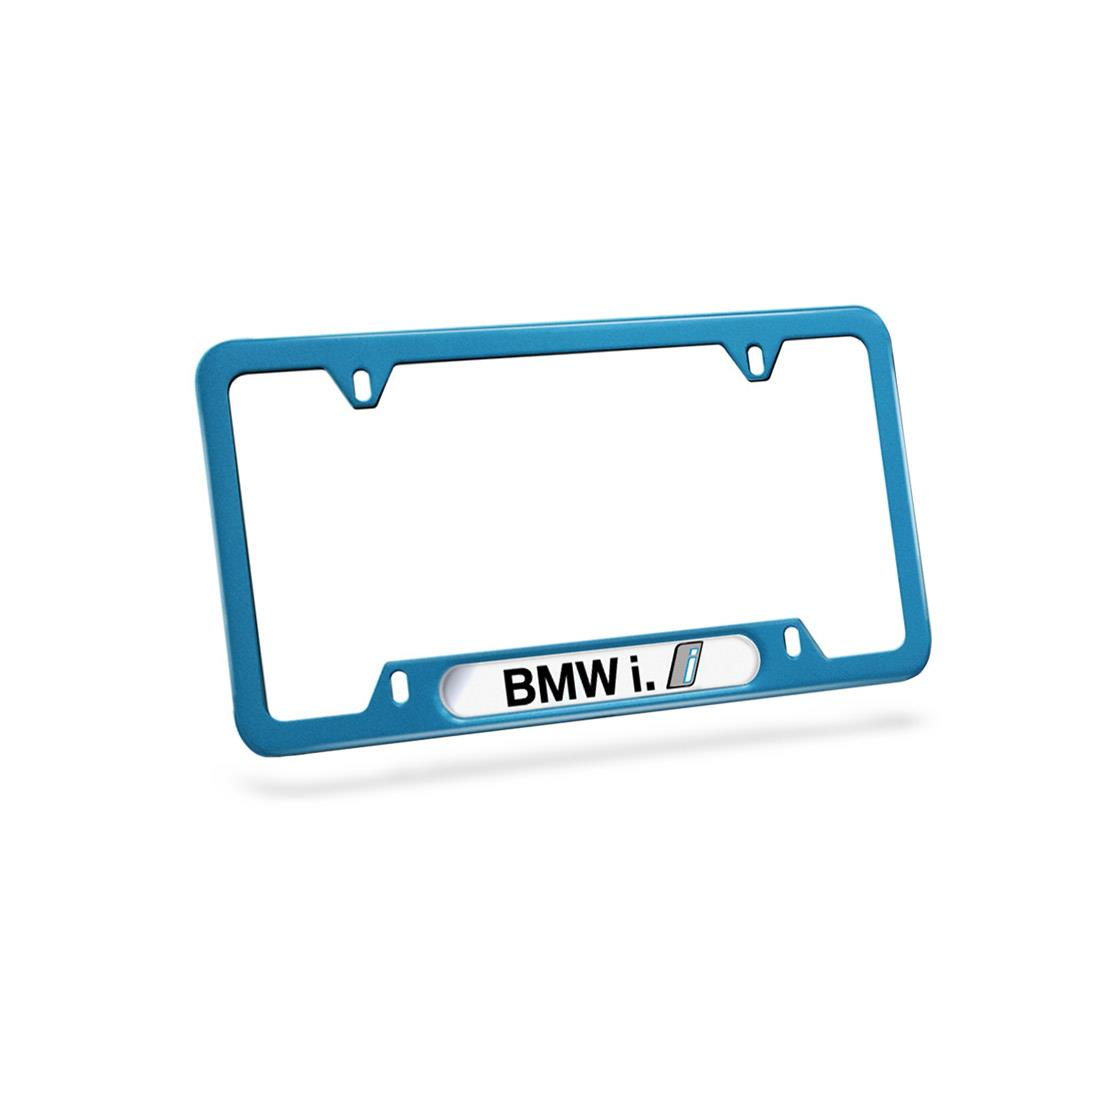 BMW i Blue License Plate Frame